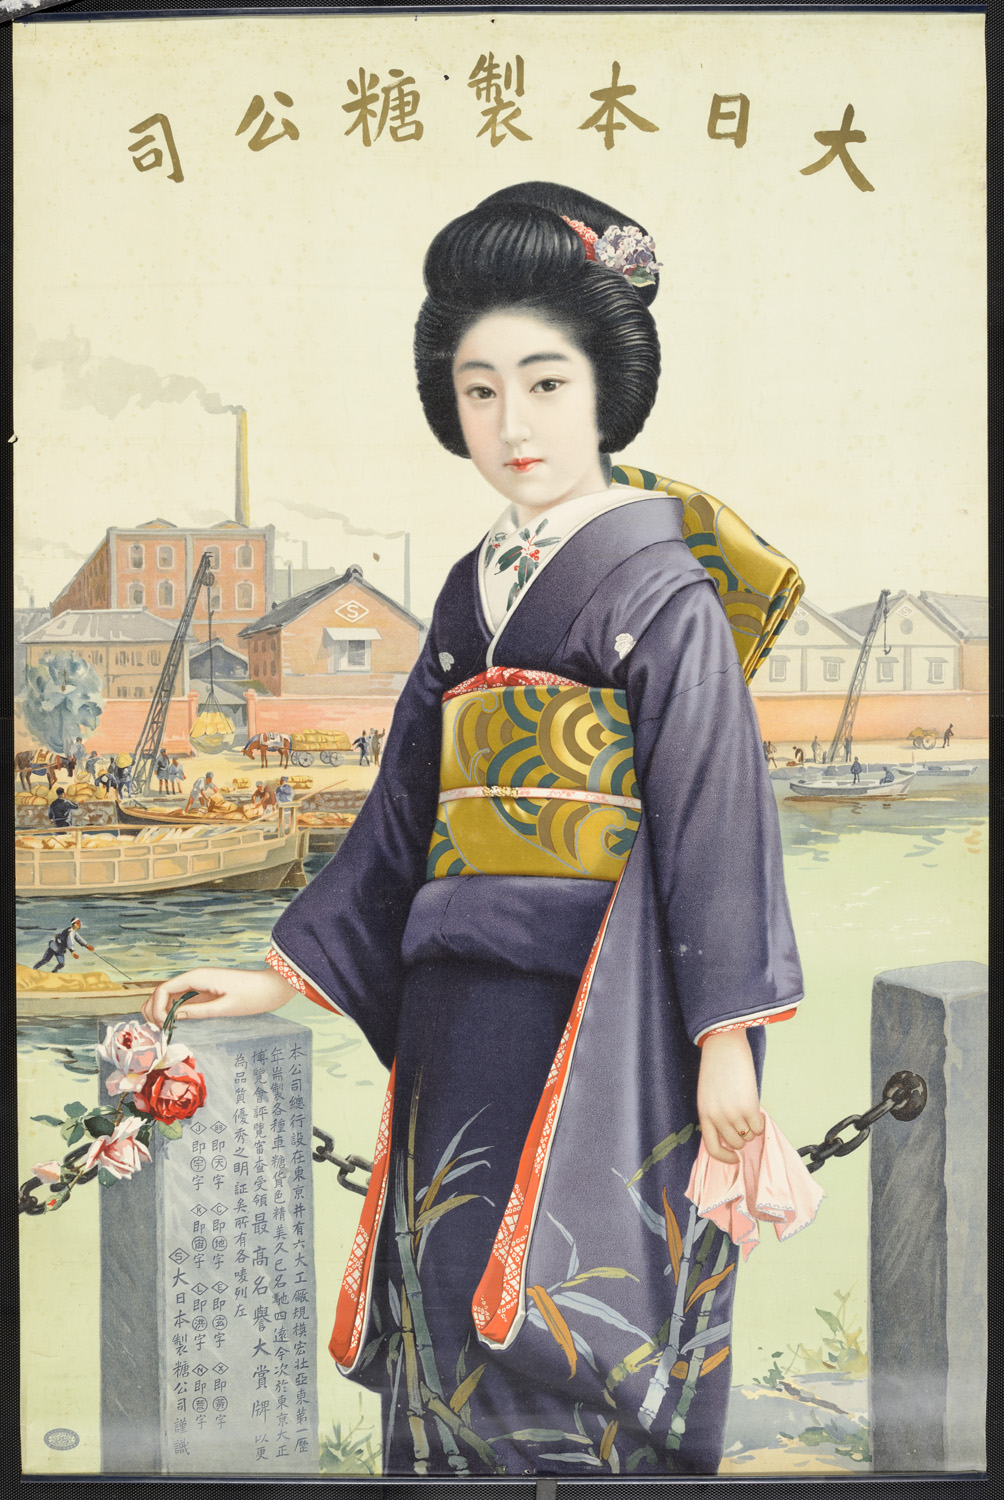 Woman in kimono with roses